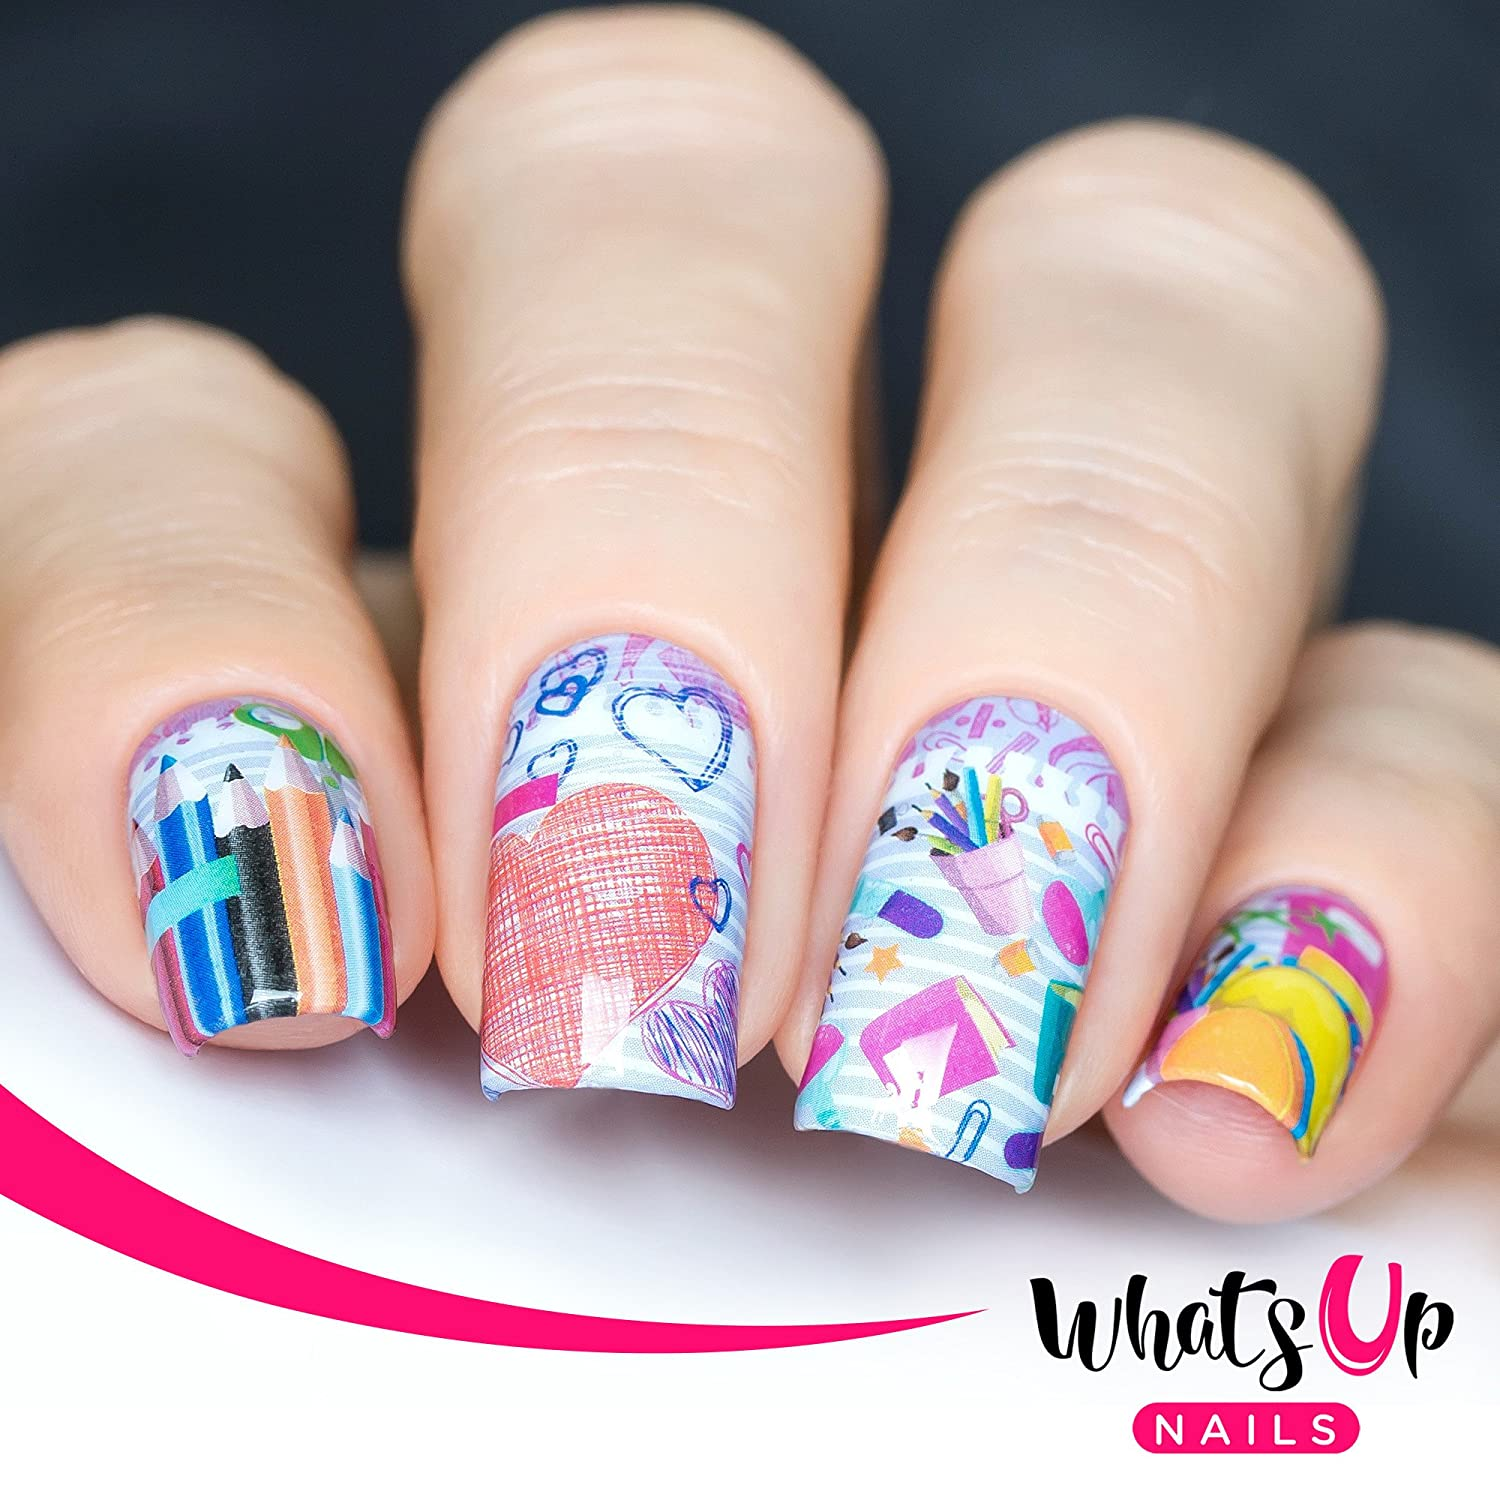 Amazon Com Whats Up Nails P110 School Rules Water Decals Sliders For Nail Art Design Beauty